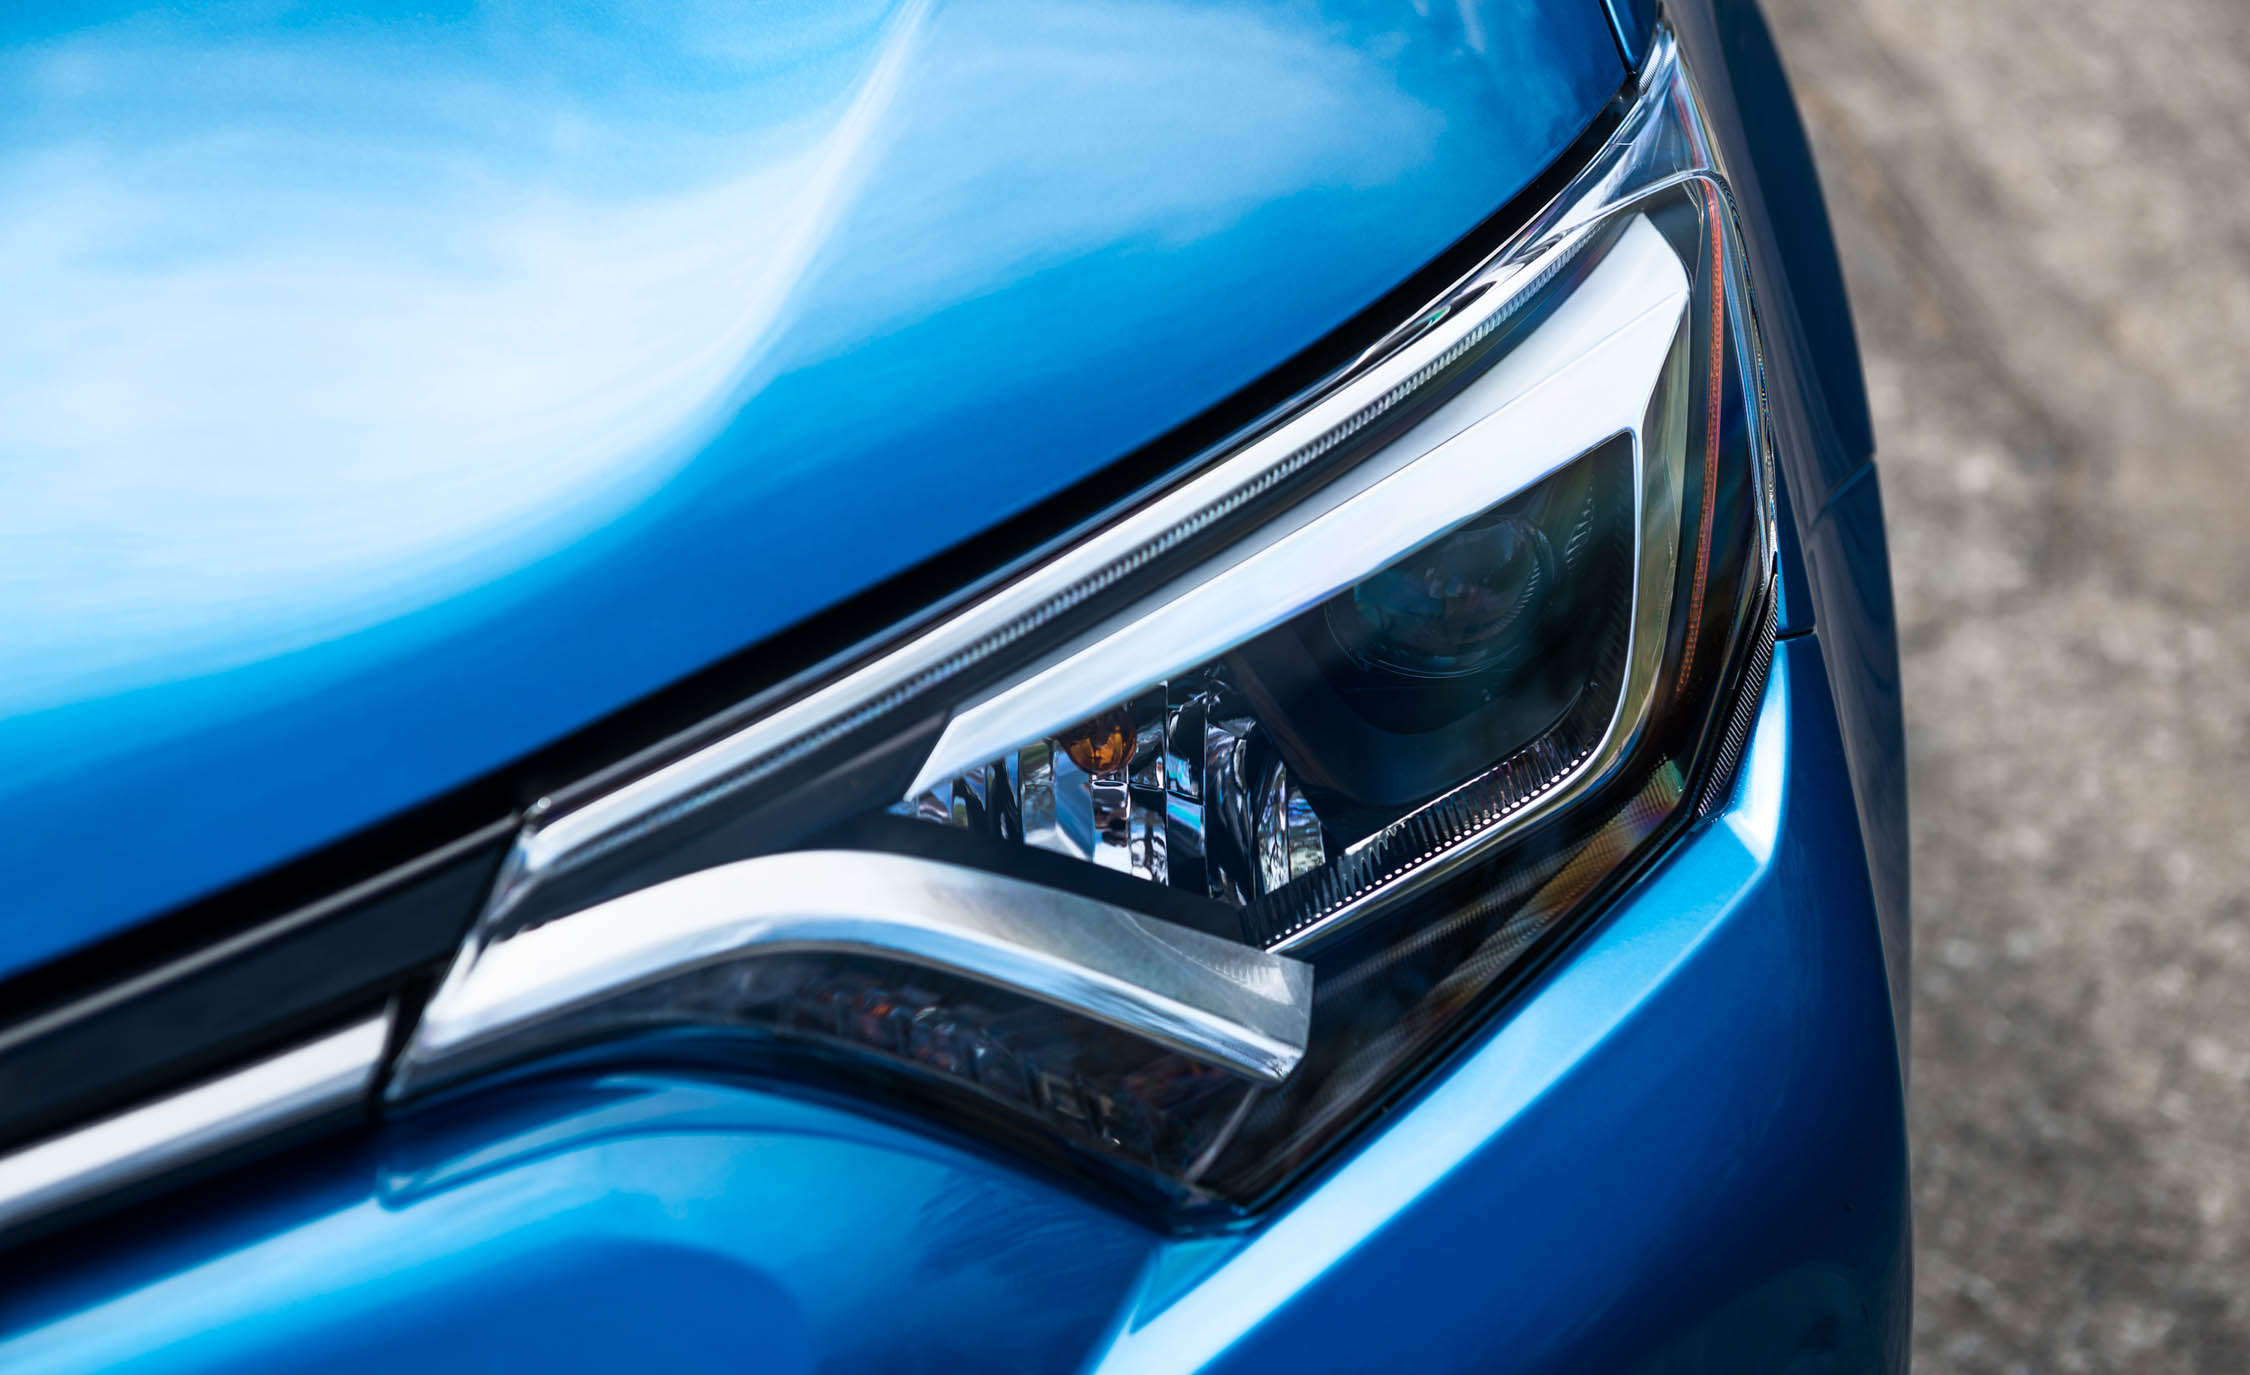 2016 Toyota Rav4 Hybrid Exterior Headlight (Photo 7 of 26)